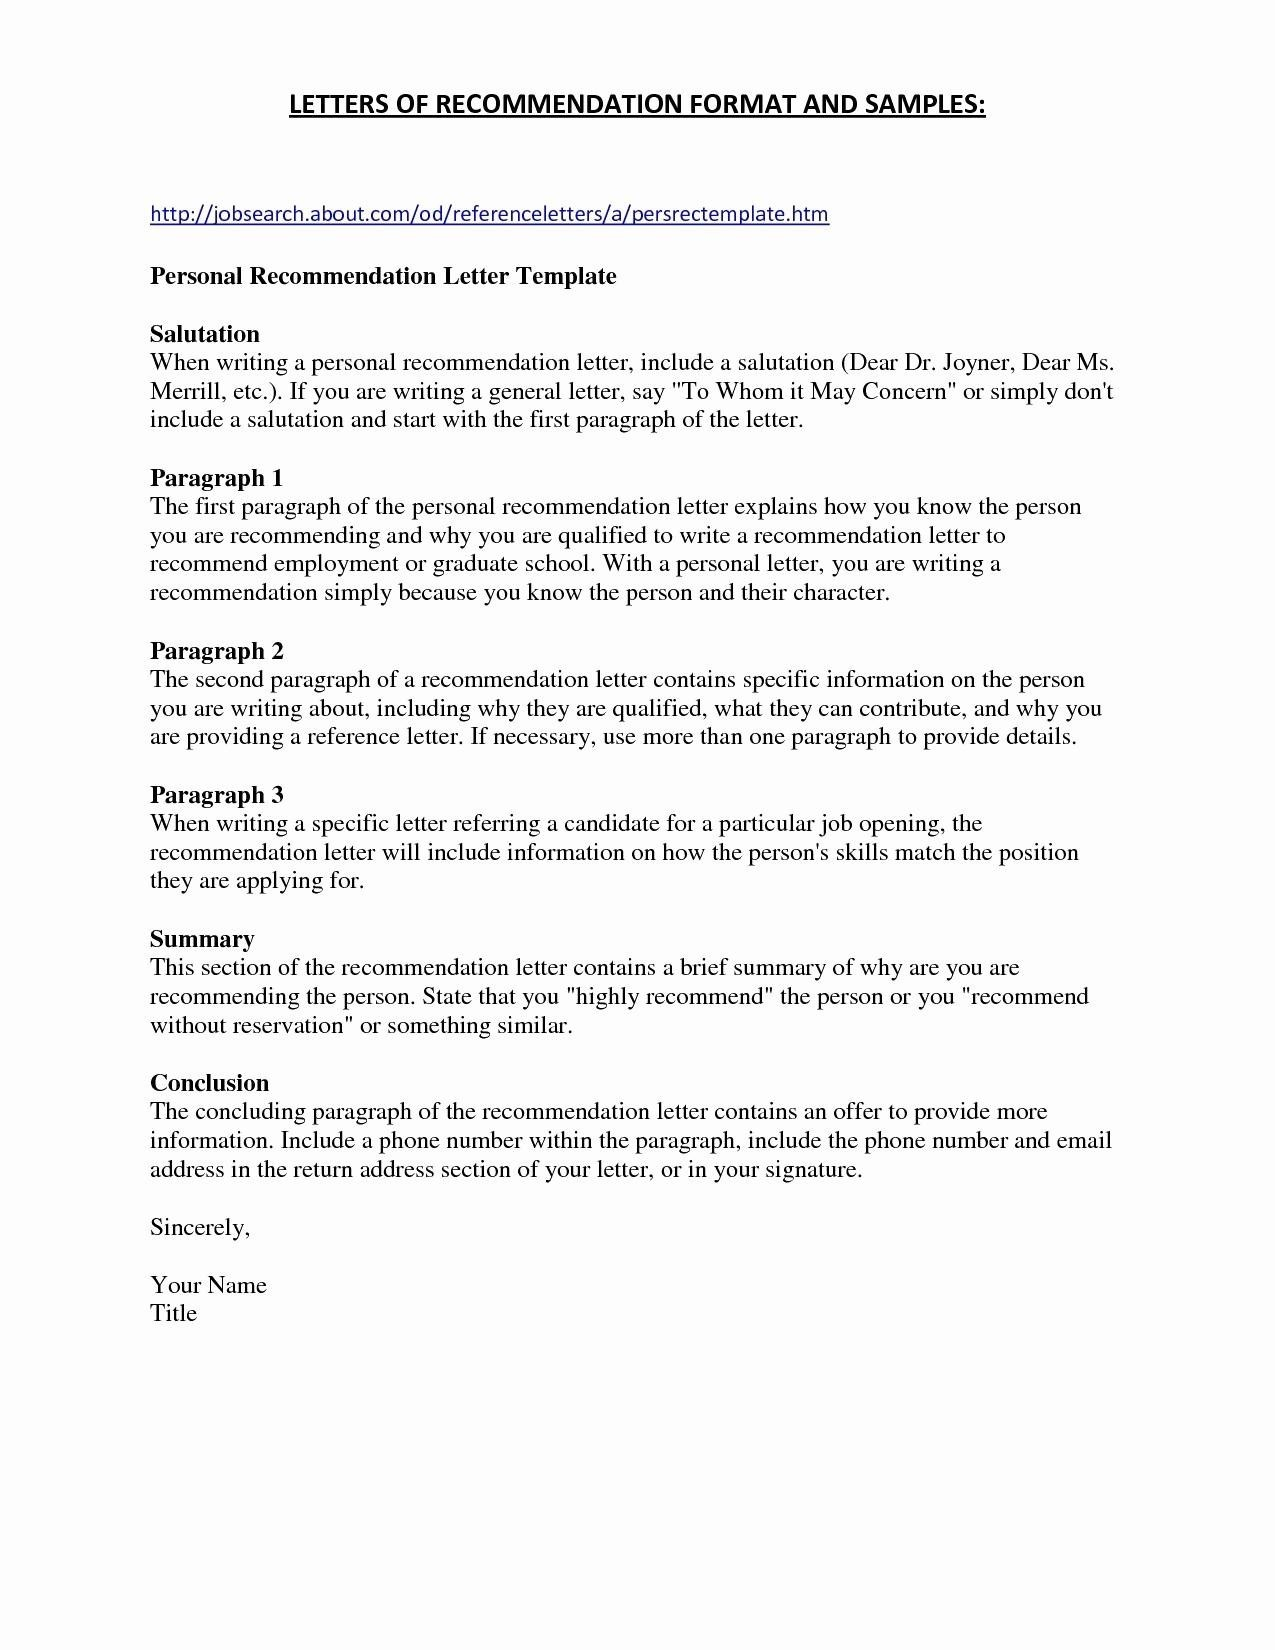 Medical Office Manager Resume Examples - Medical Fice Manager Resume Examples New Medical Fice Manager